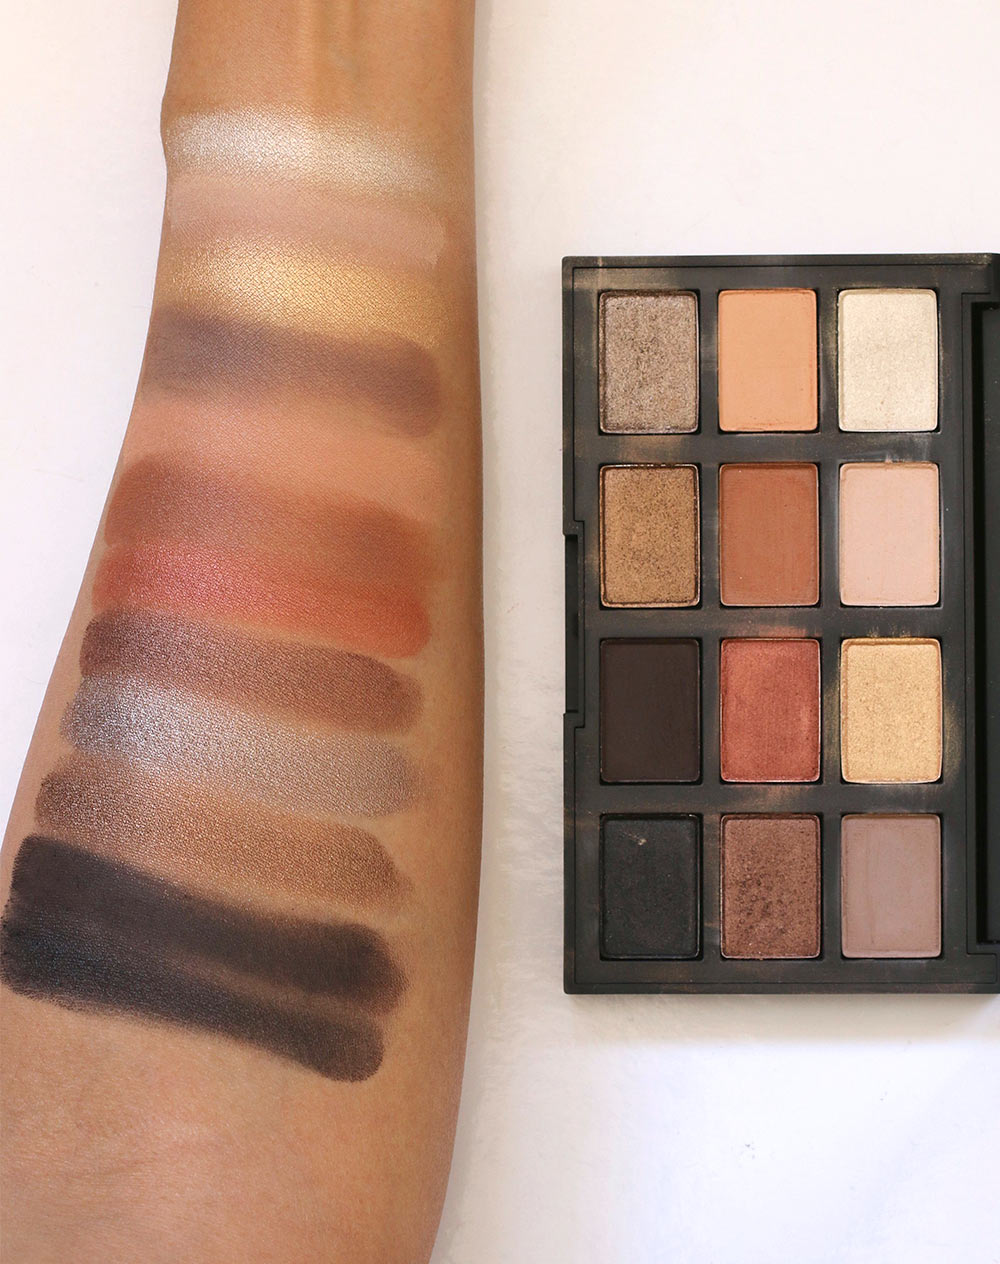 nars loaded swatches